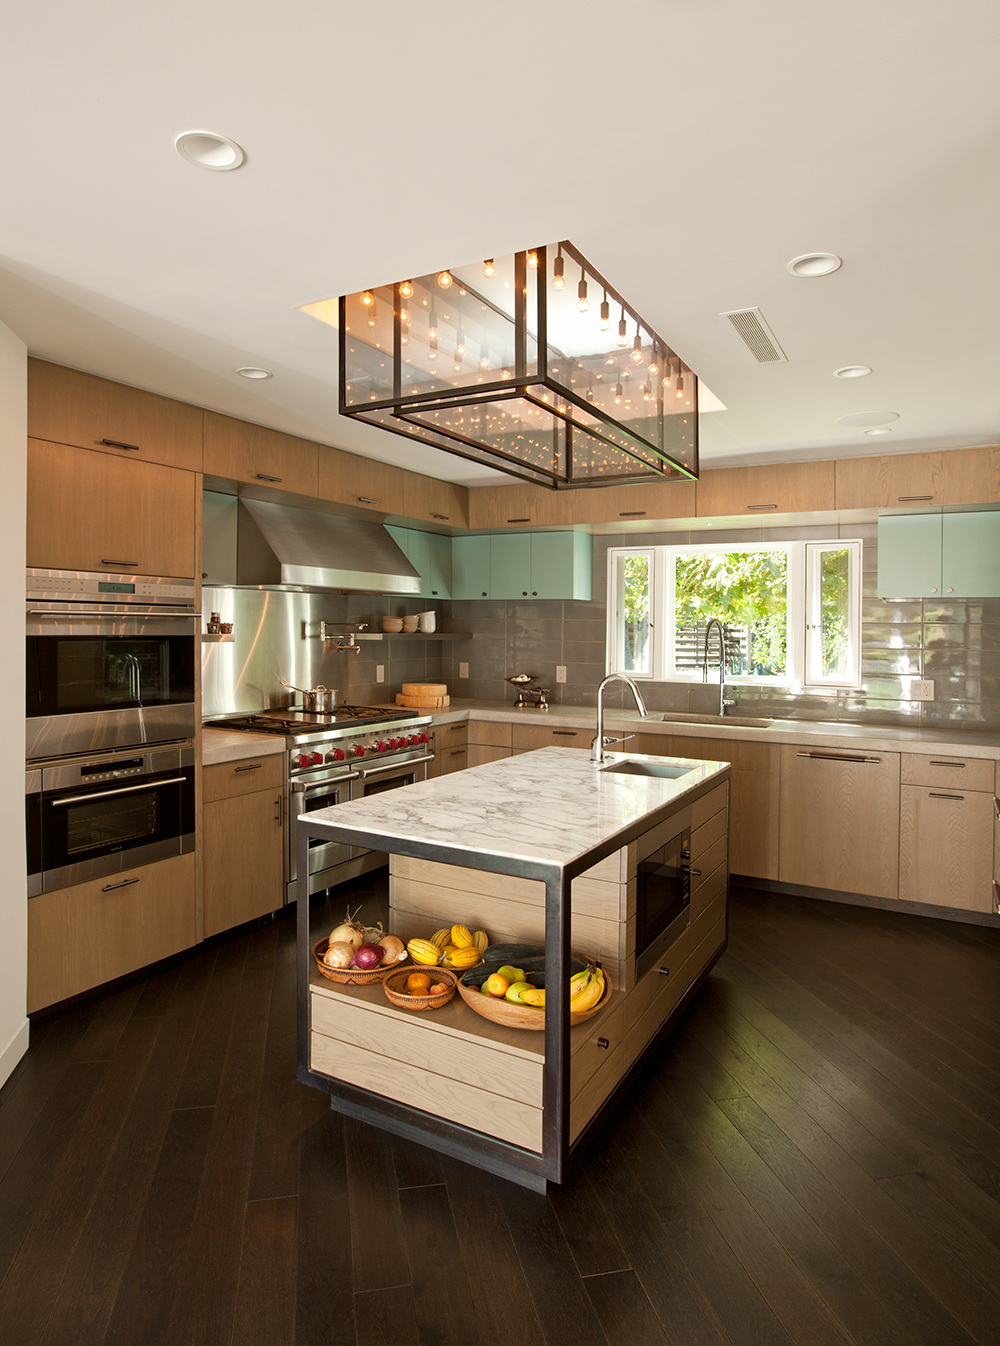 A modern kitchen for a stunning new residence in CA